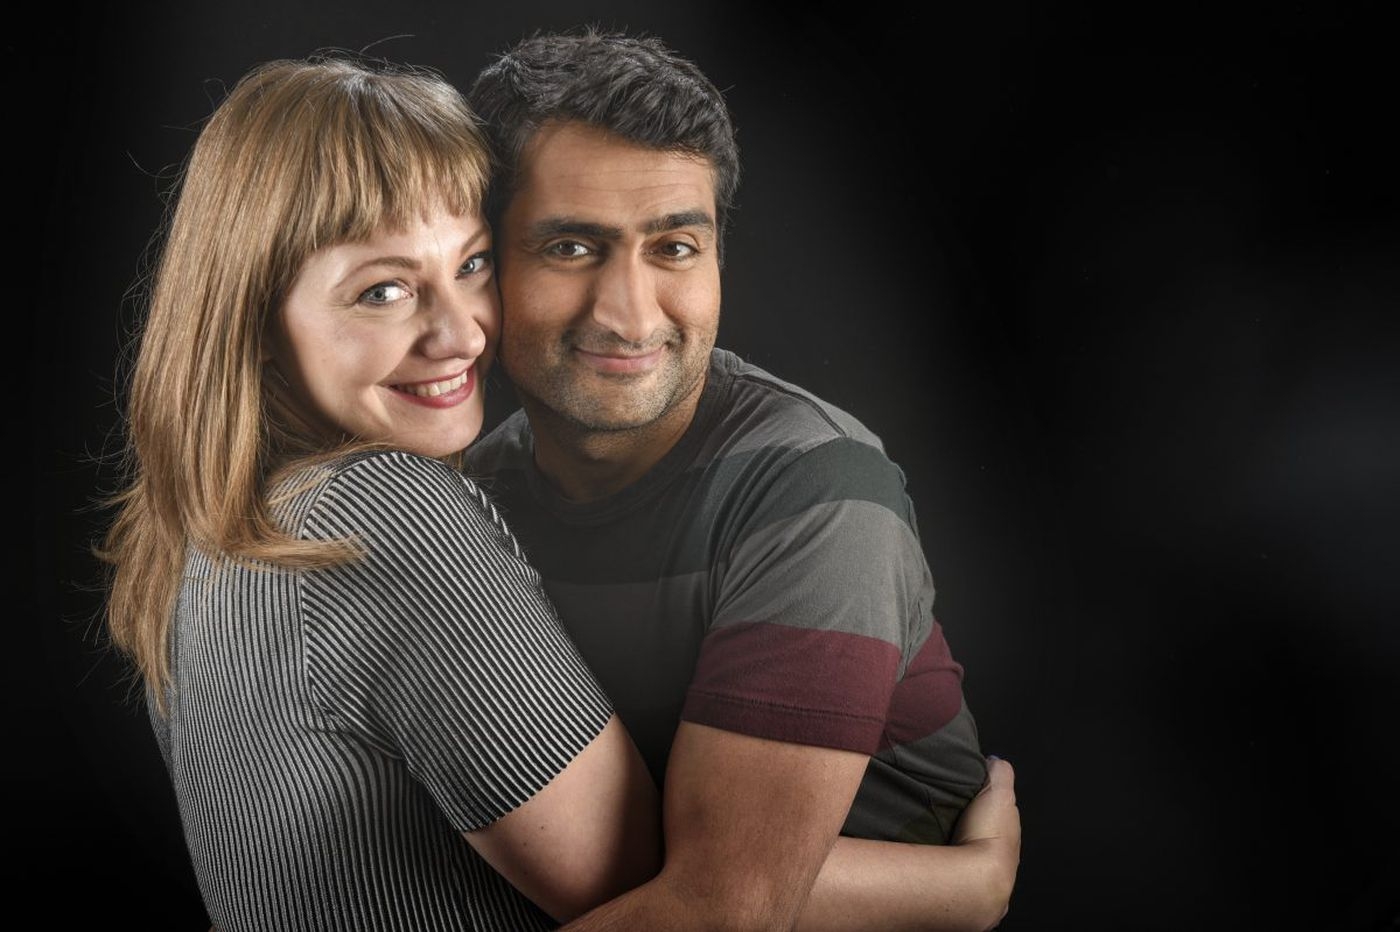 Sleeper hit: Kumail Nanjiani and Emily Gordon talk about their coma comedy 'The Big Sick.'